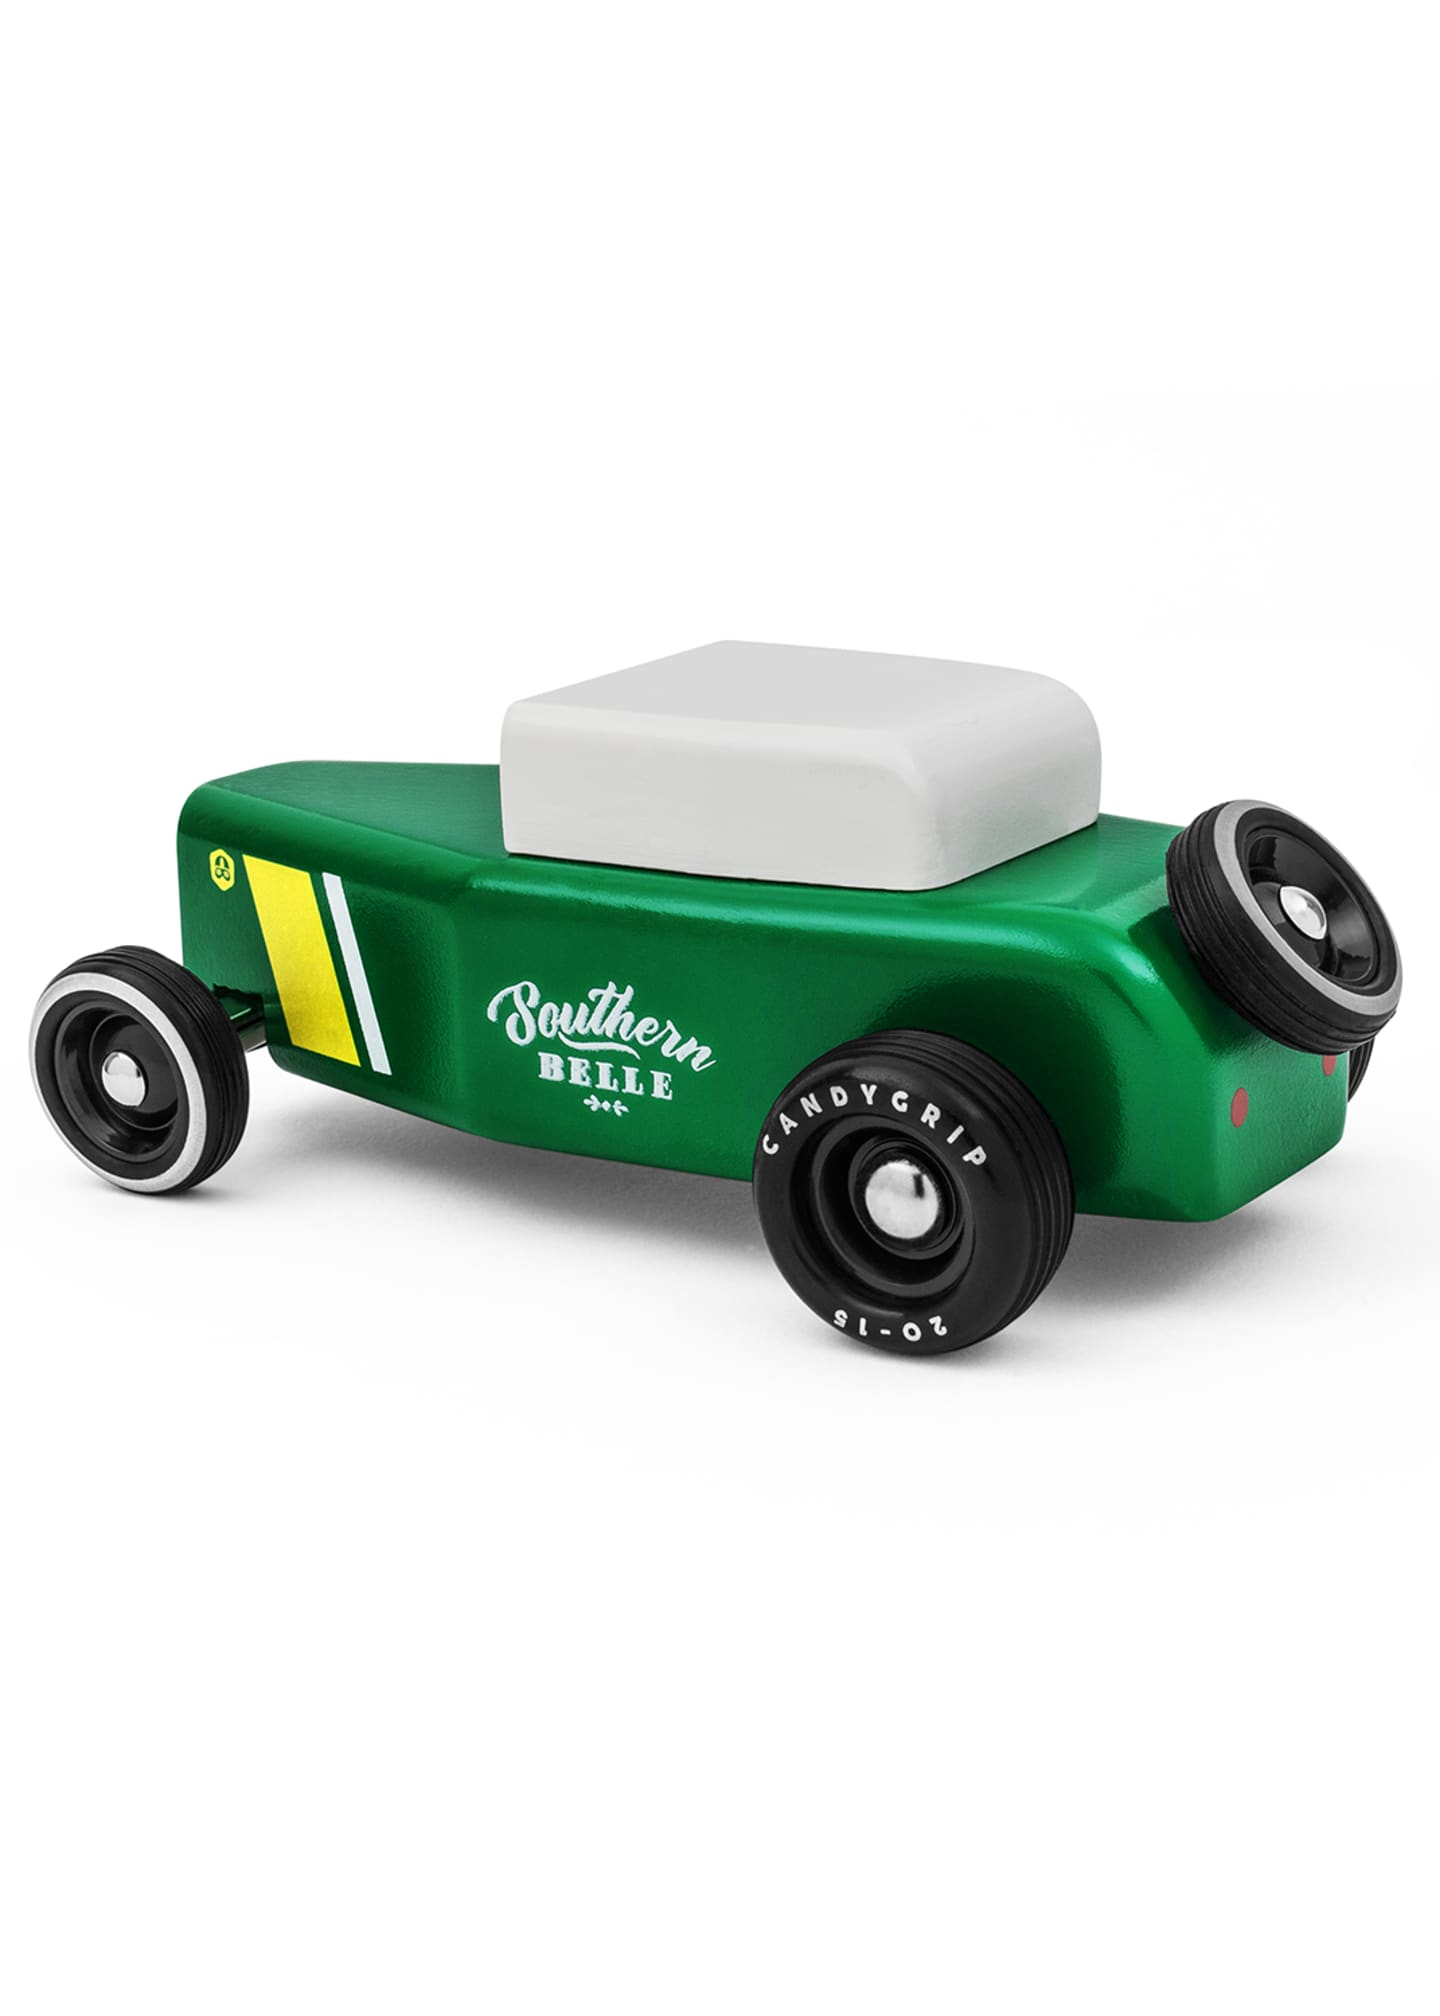 Candylab Toys Outlaw Southern Belle Toy Car